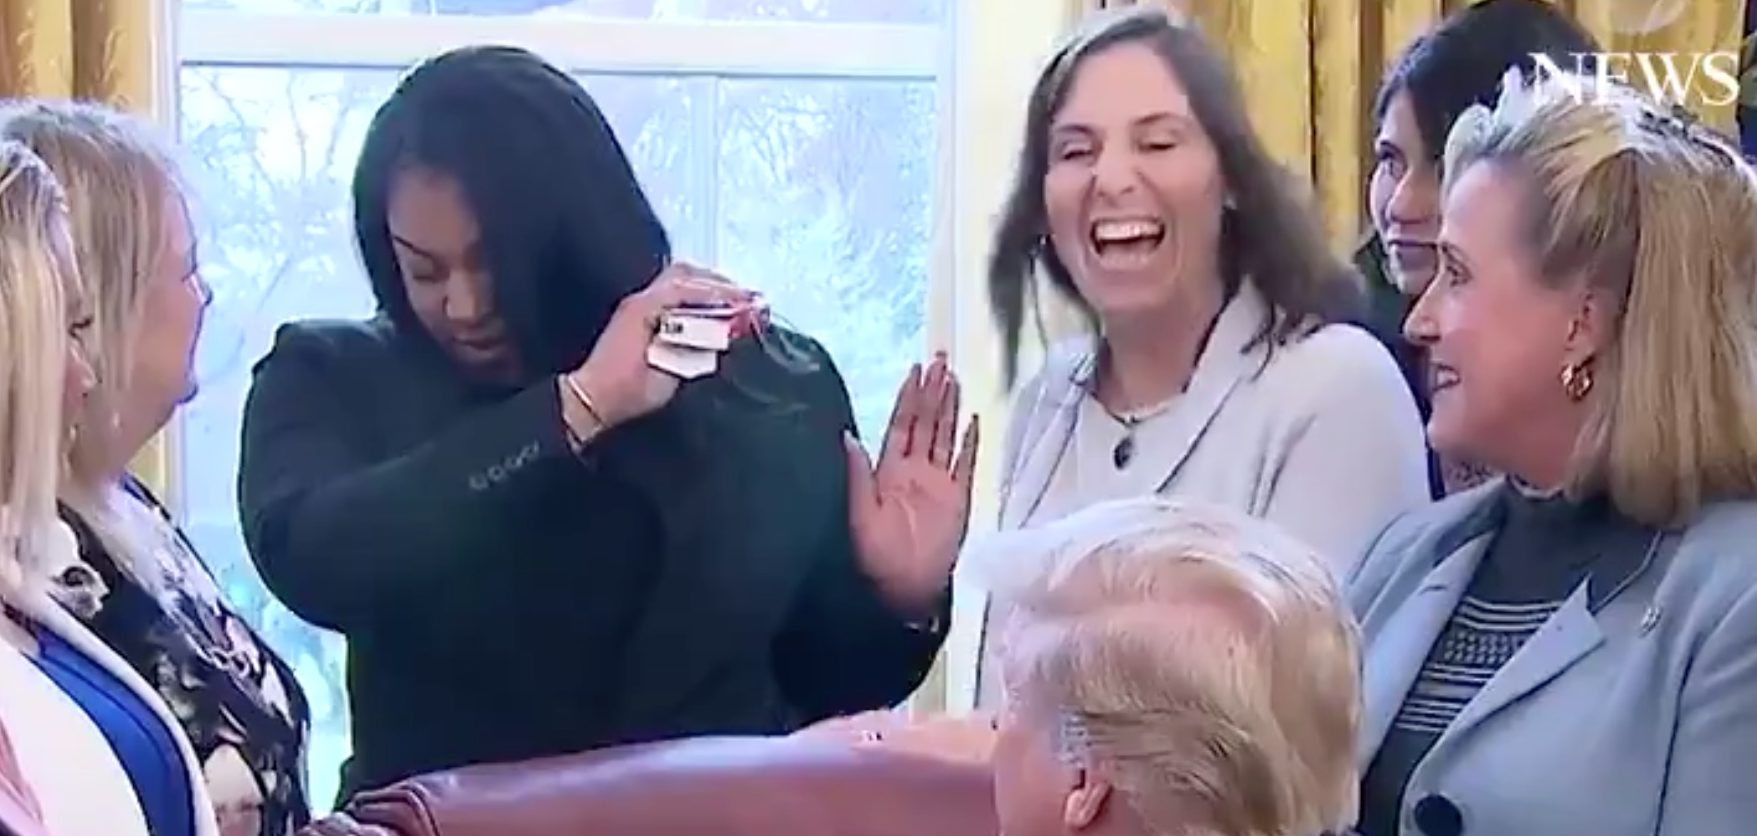 A woman dabbed as President Trump signed a bill against online sex trafficking in the Oval Office on Wednesday.